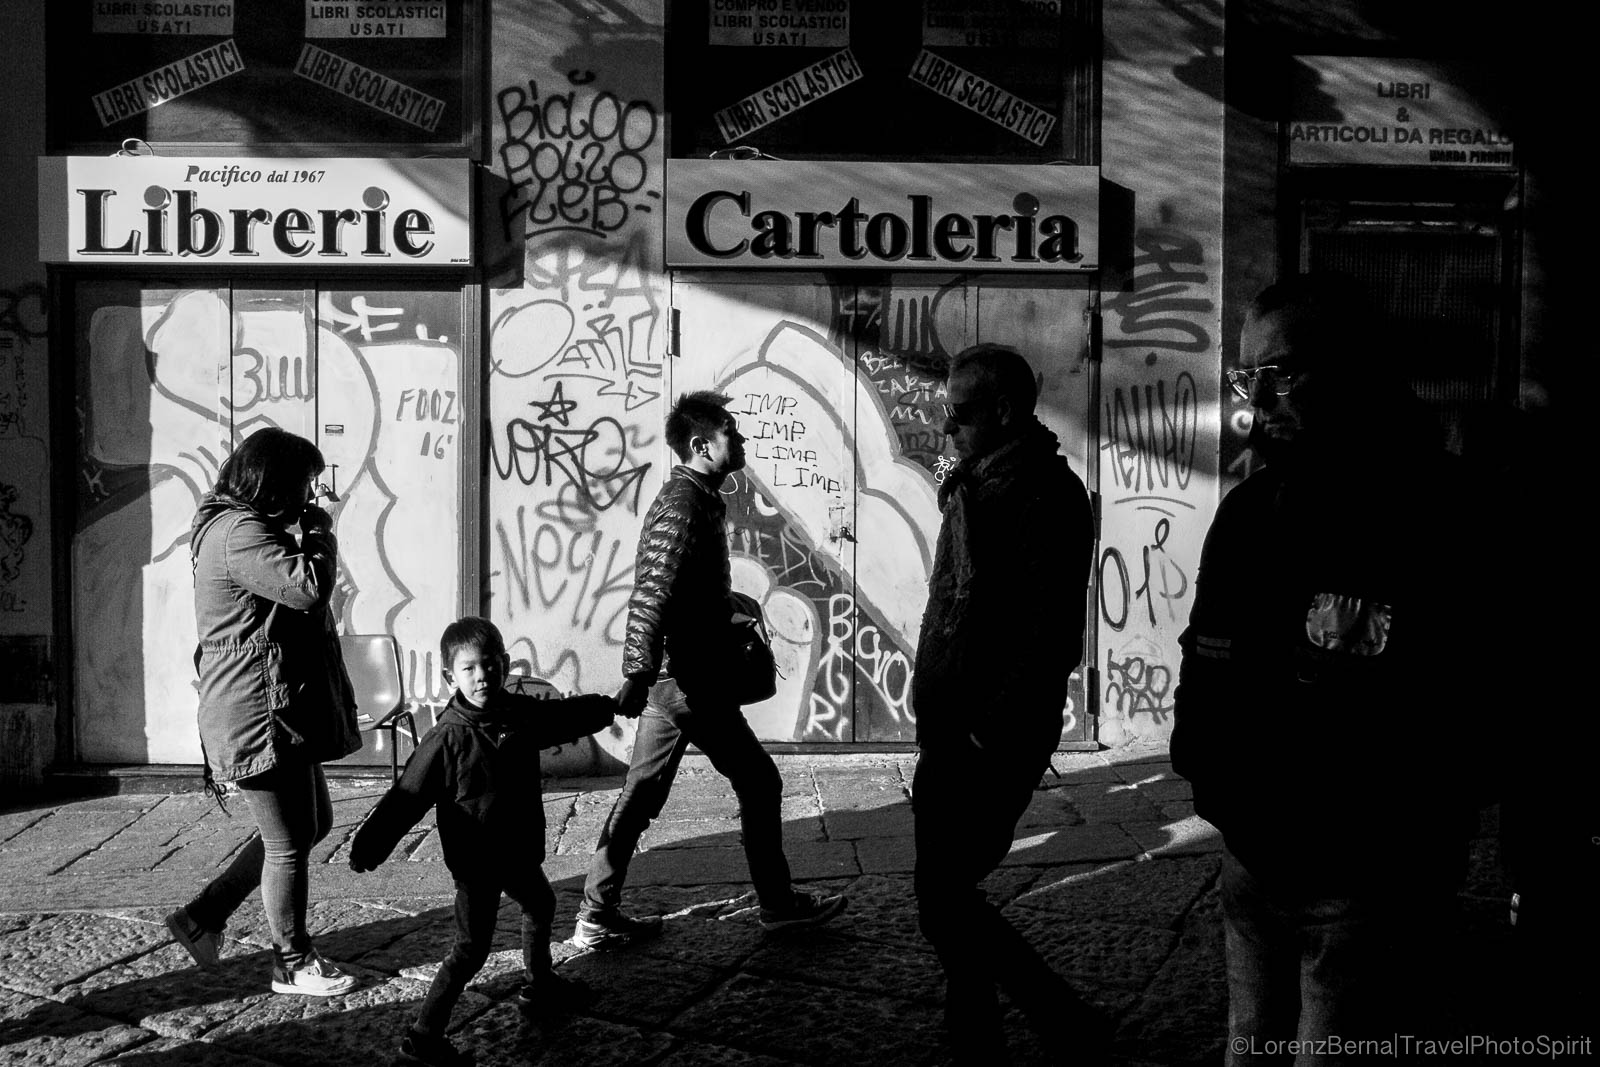 Passers-by in the streets of Naples on a Saturday afternoon, Italy.